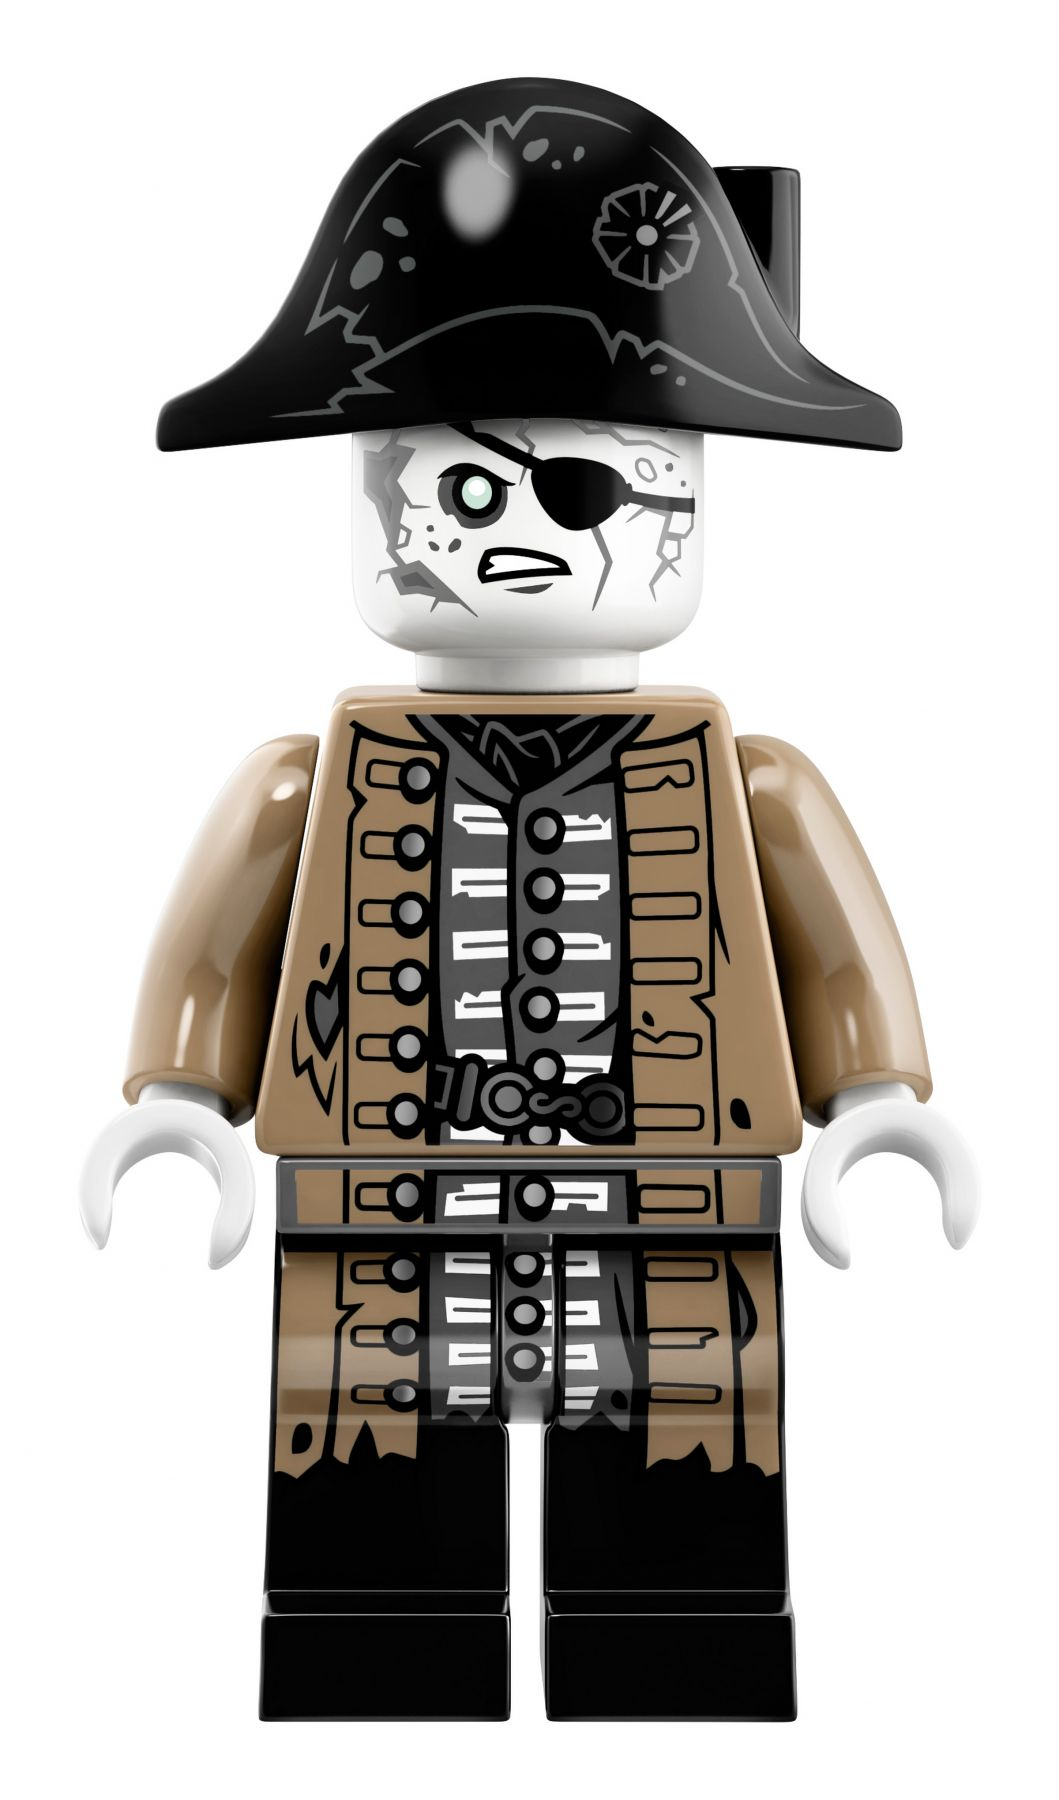 LEGO Advanced Models 71042 Silent Mary LEGO_71042_alt7.jpg